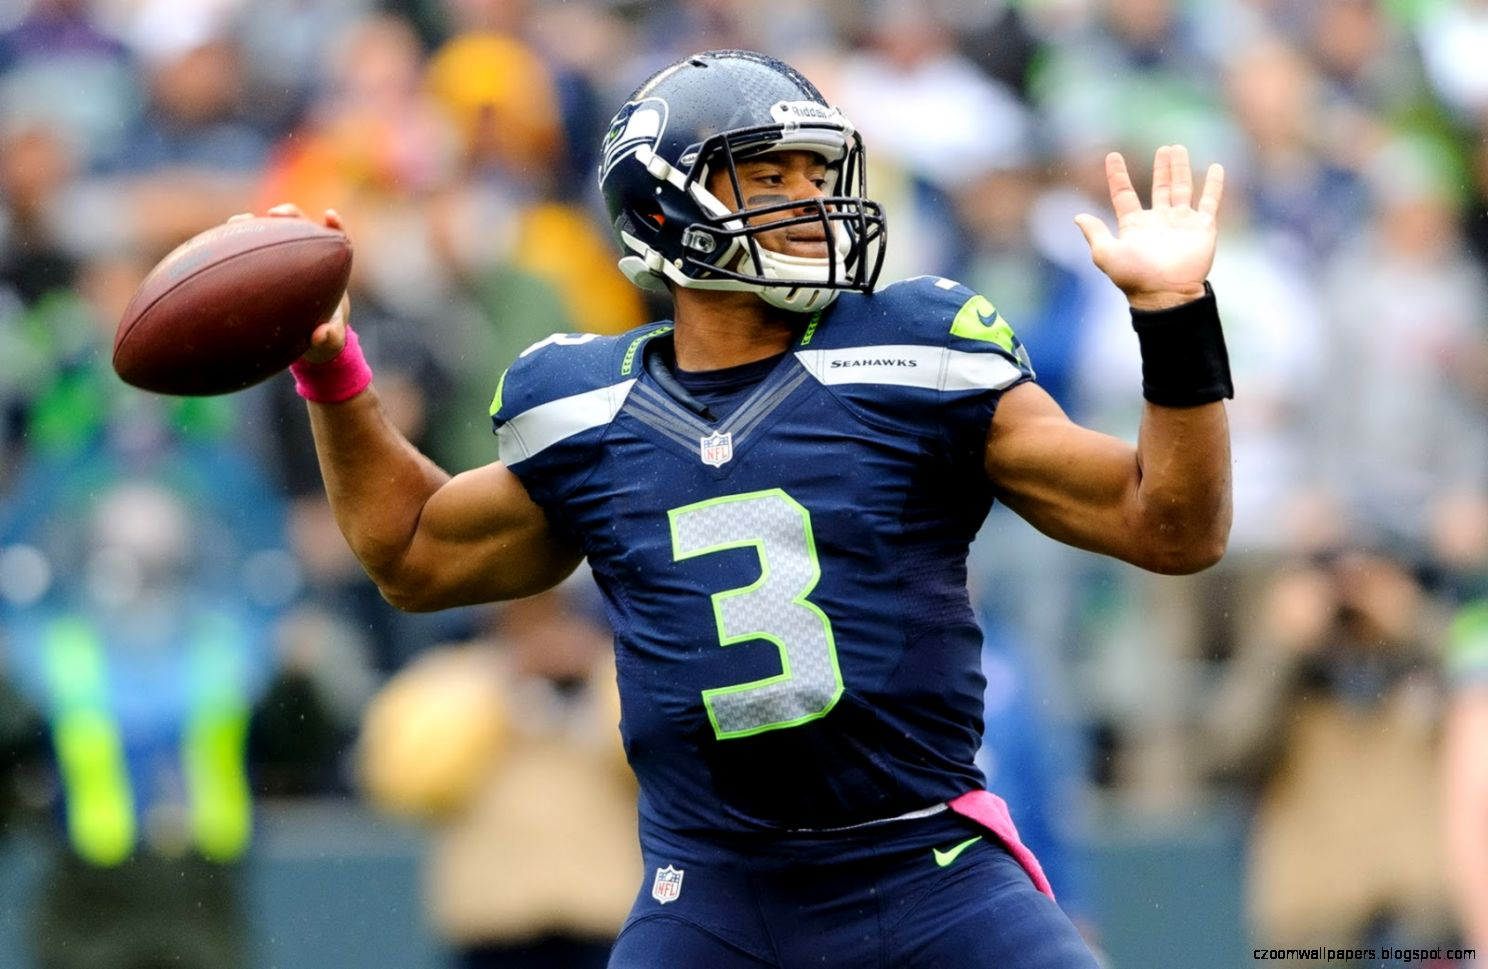 Russell Wilson Nfl Player Wallpaper Size 1600x1065  AmazingPict